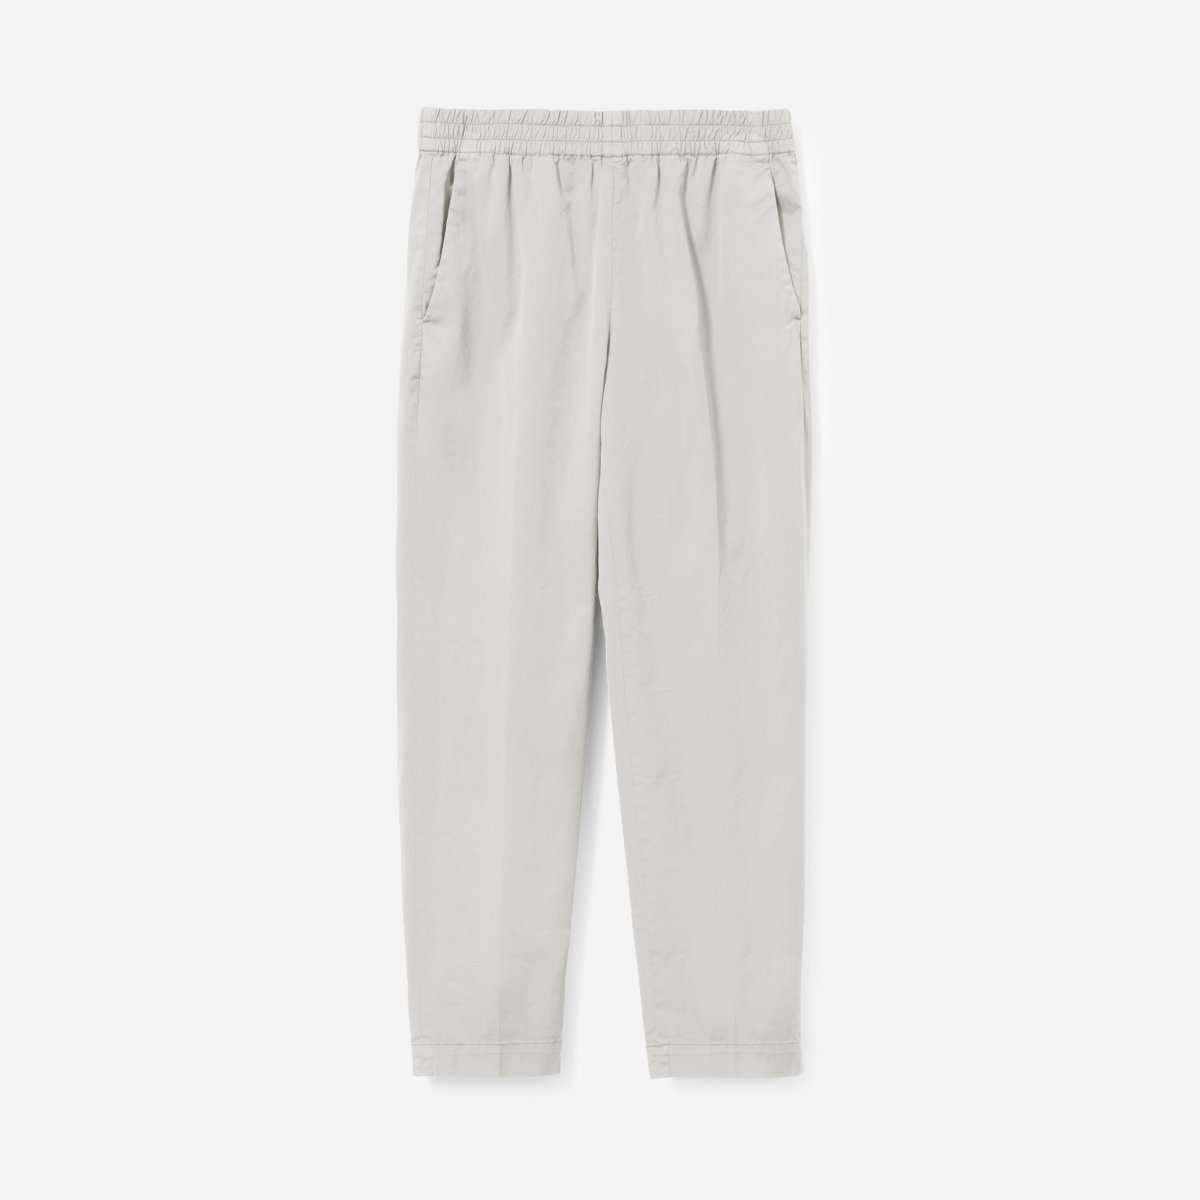 http://www.gopjn.com/t/TEFNS0VFQUVLSU1NREFFREhLRE0?url=https%3A%2F%2Fwww.everlane.com%2Fproducts%2Fwomens-easy-chino-stone%3Fcollection%3Dwomens-bottoms